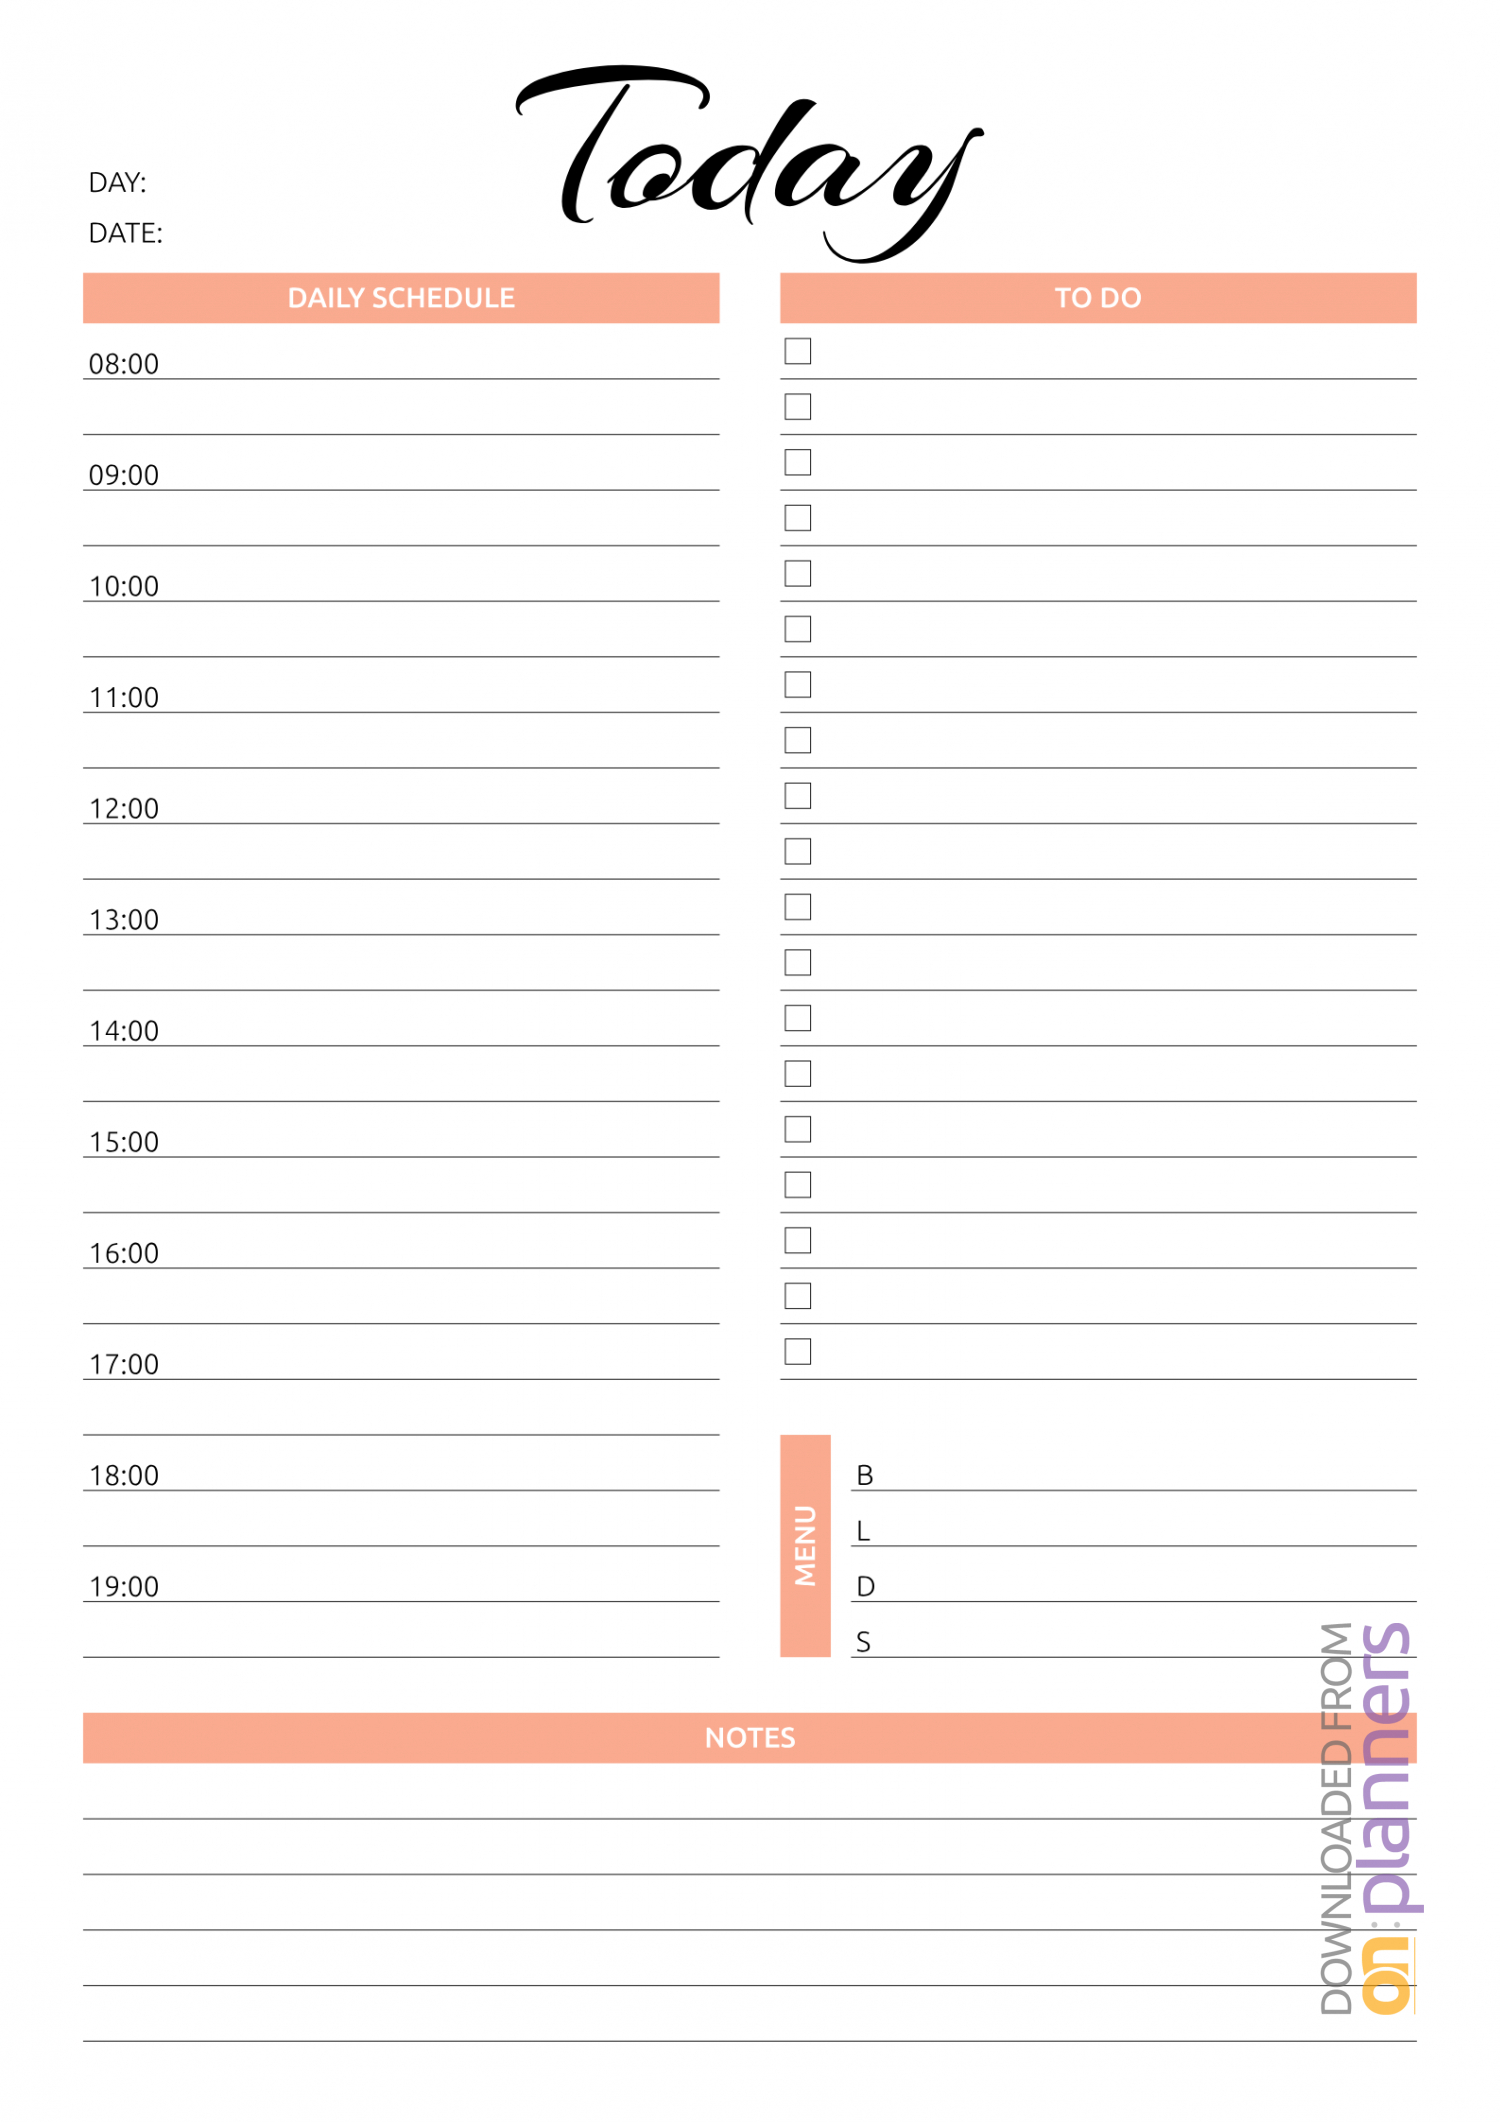 Download Printable Today Hourly Planner Pdf intended for Free Hourly Planner Template